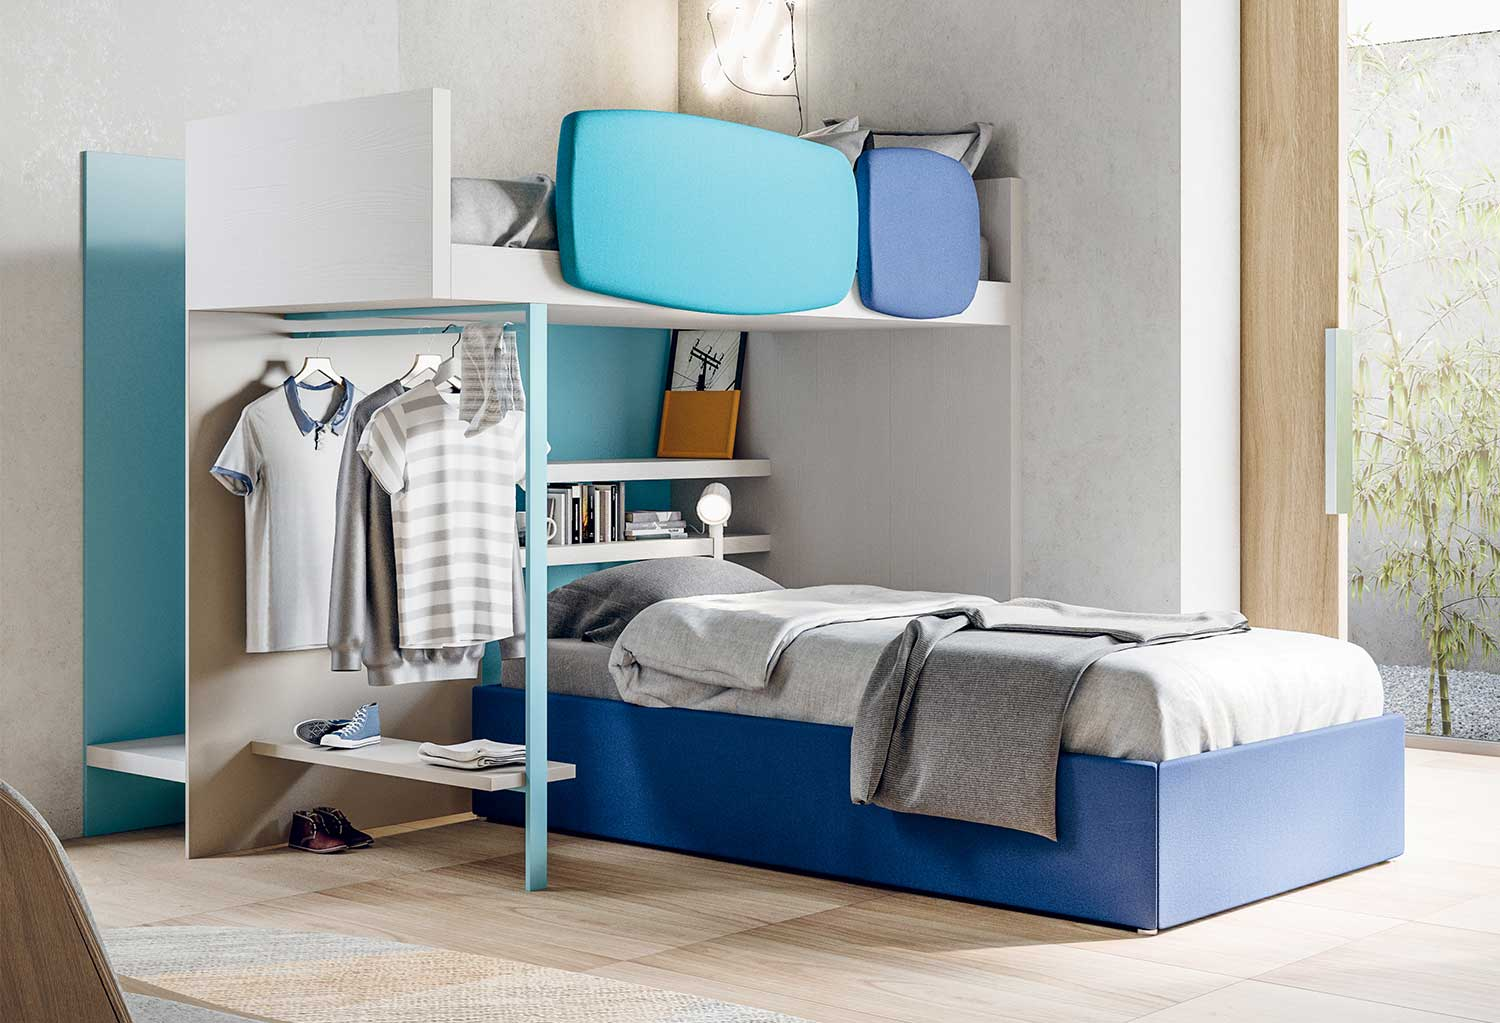 The low bed can be chosen in many different models, also with storage